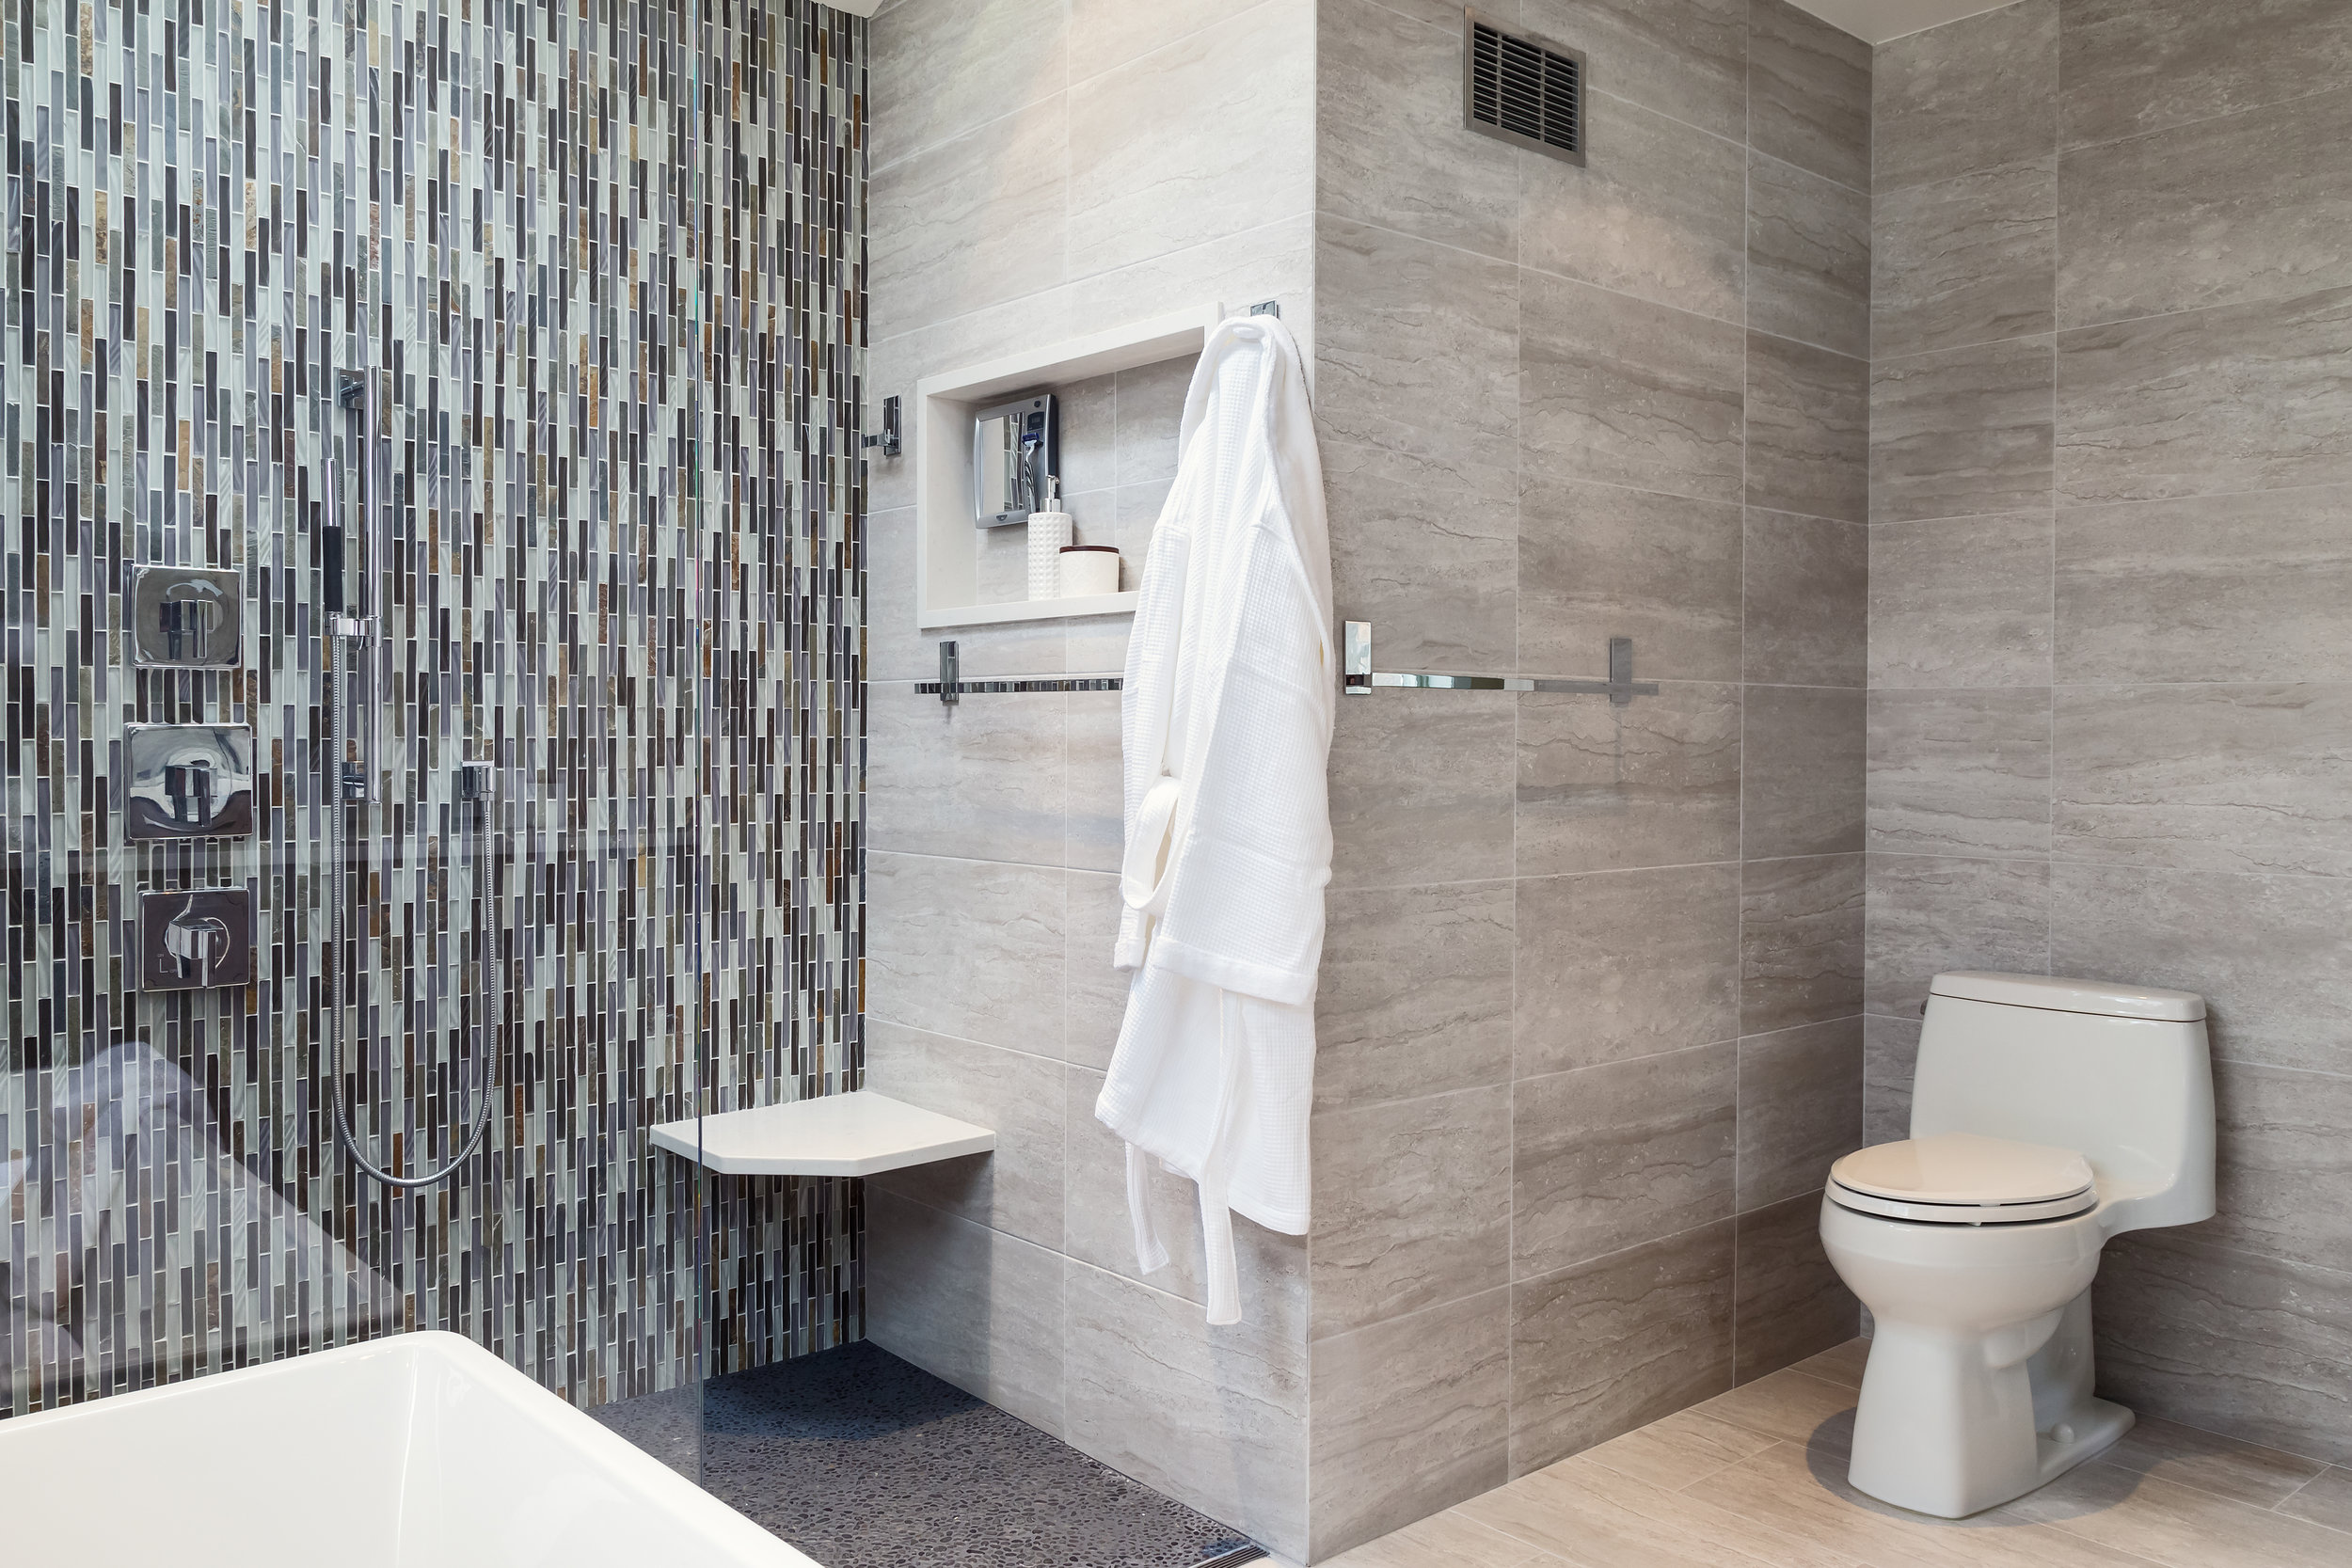 Modern bathroom with tiled shower